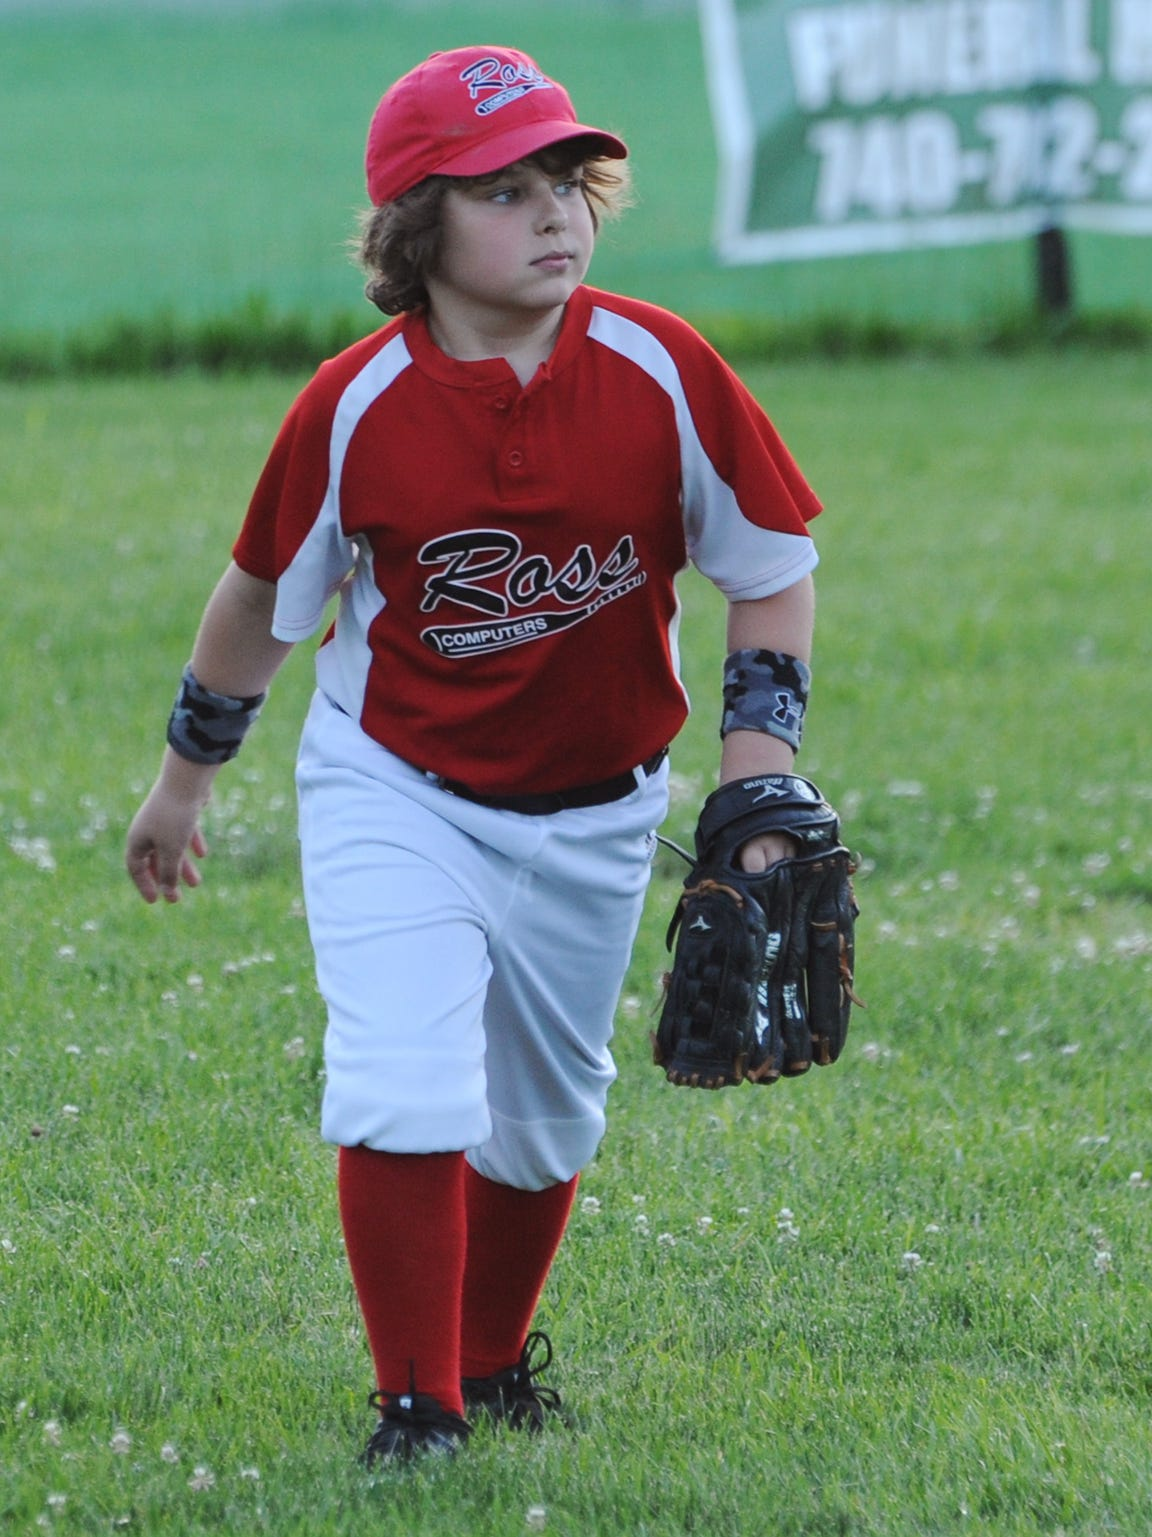 Connor Davis waits for the pitch during a game Tuesday,